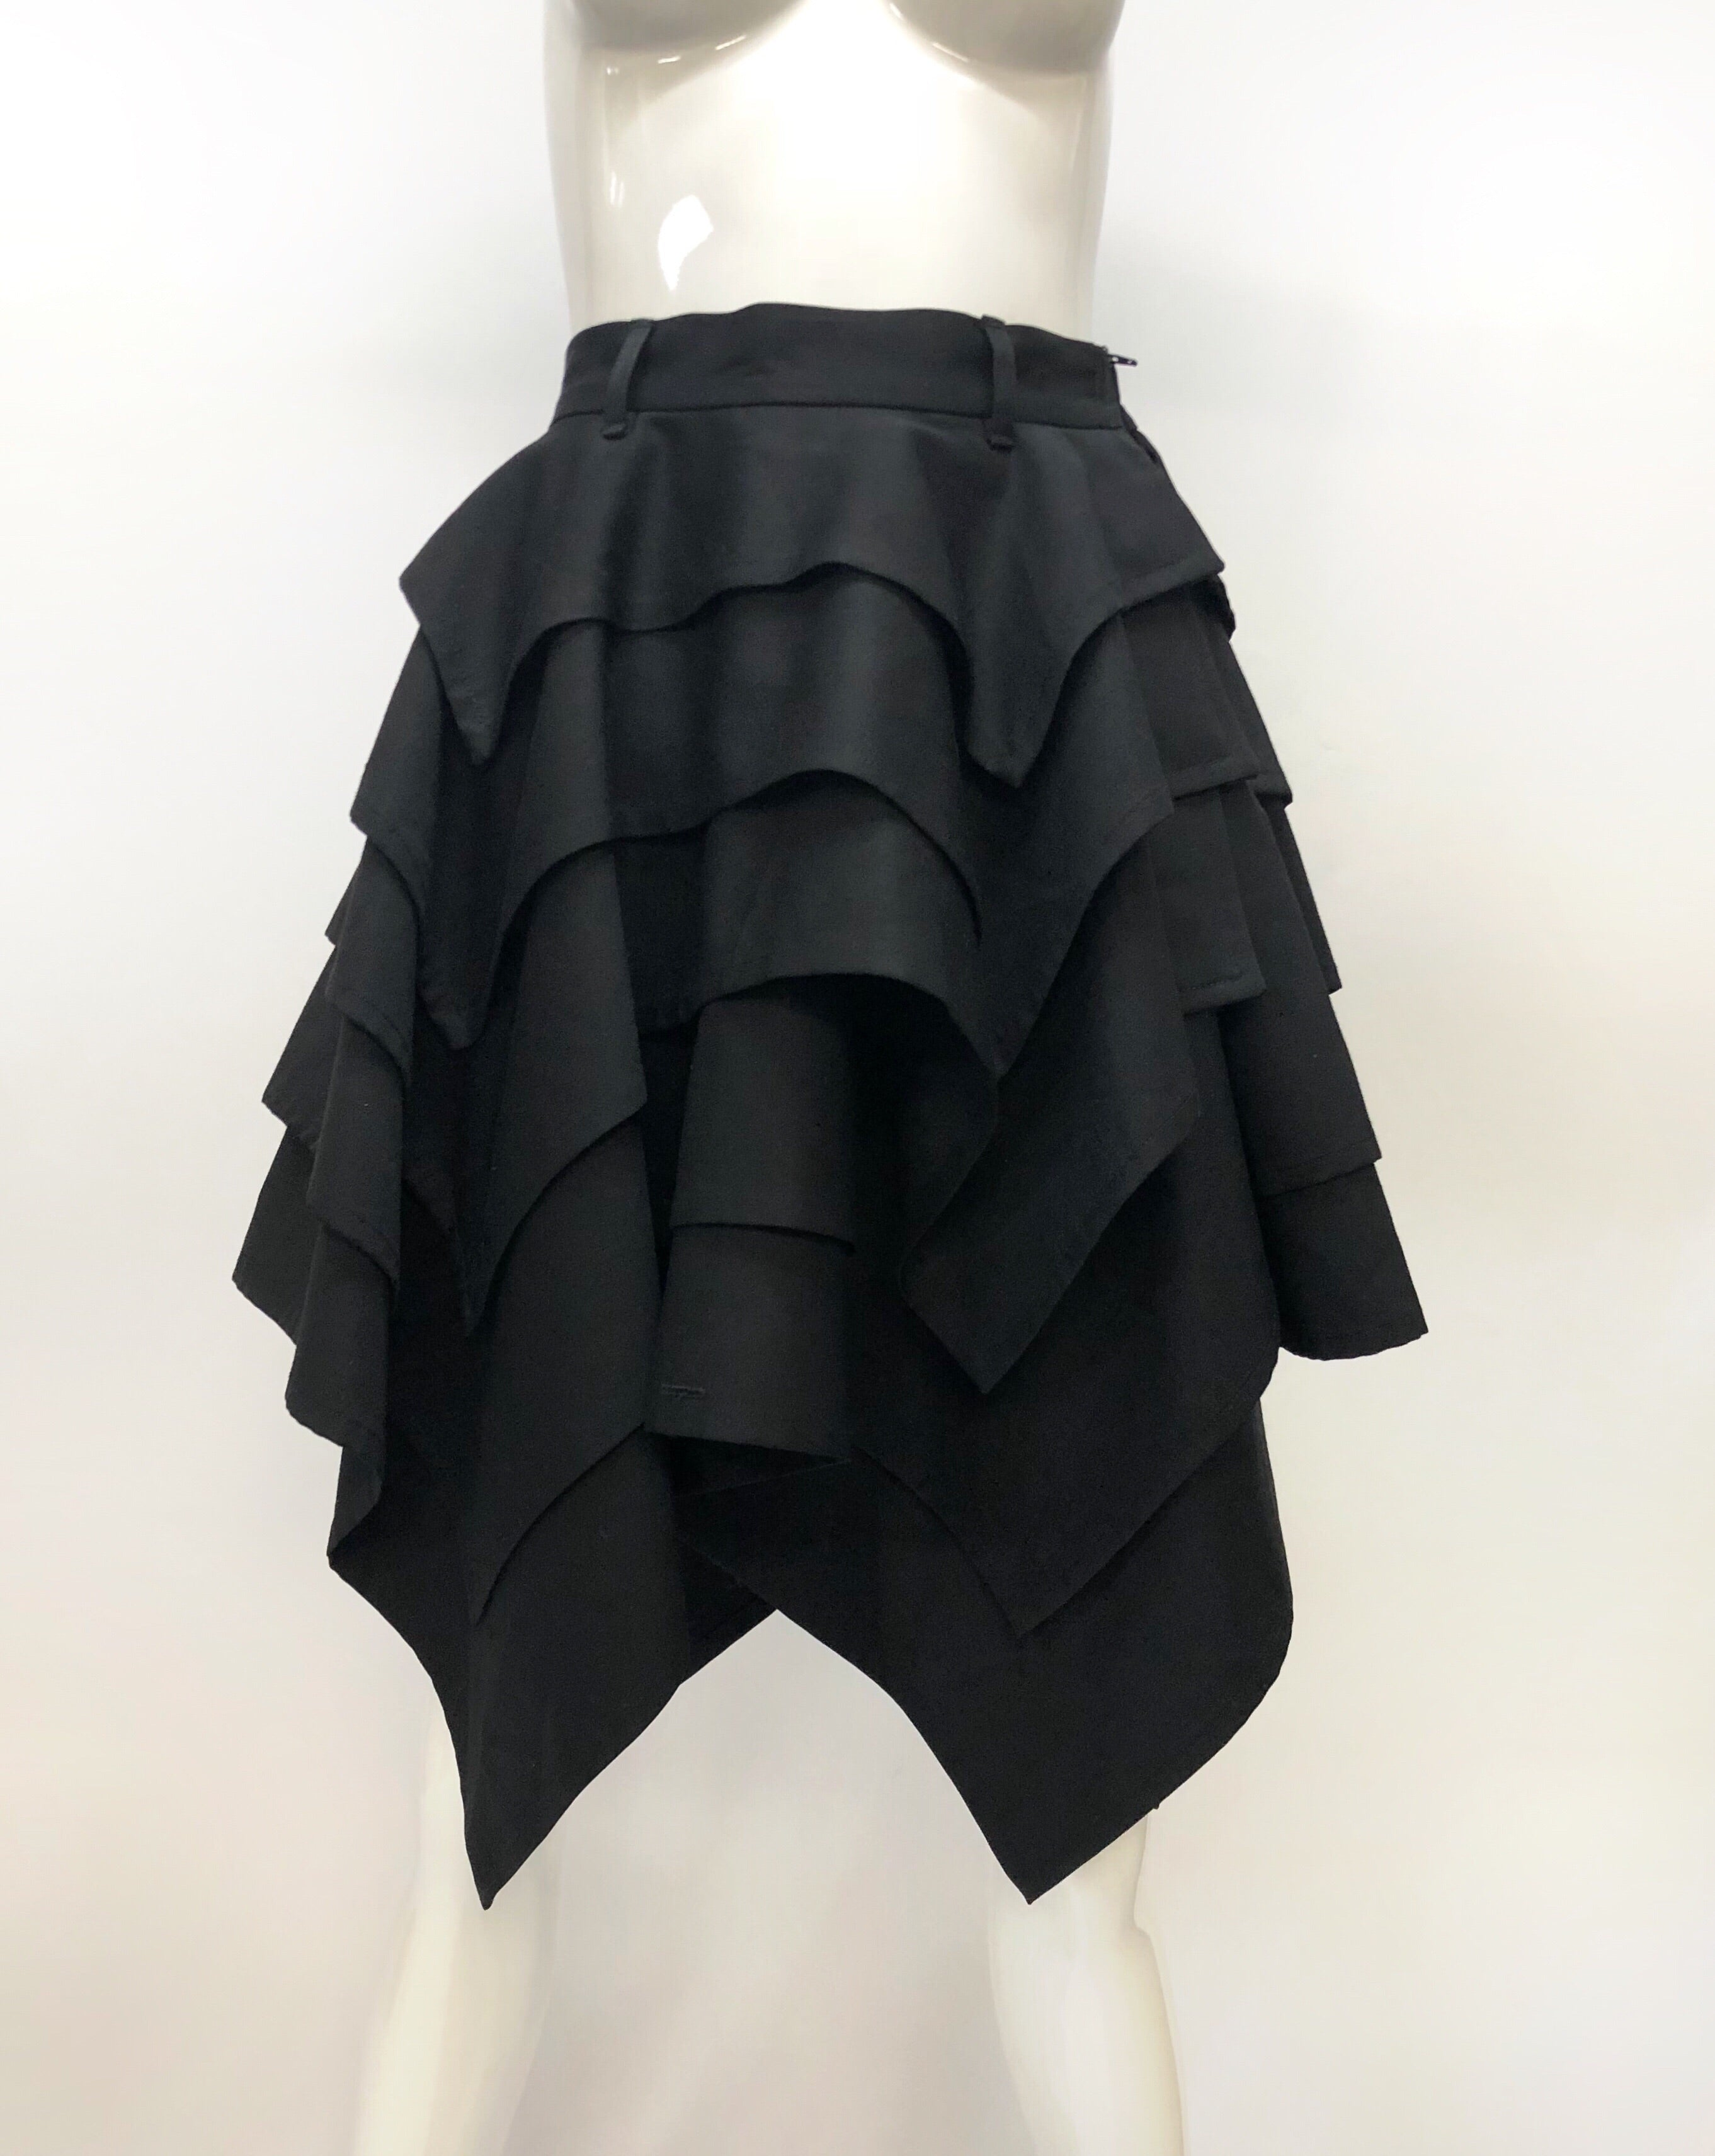 Jean Paul Gaultier Femme Black Tiered Handkerchief Skirt